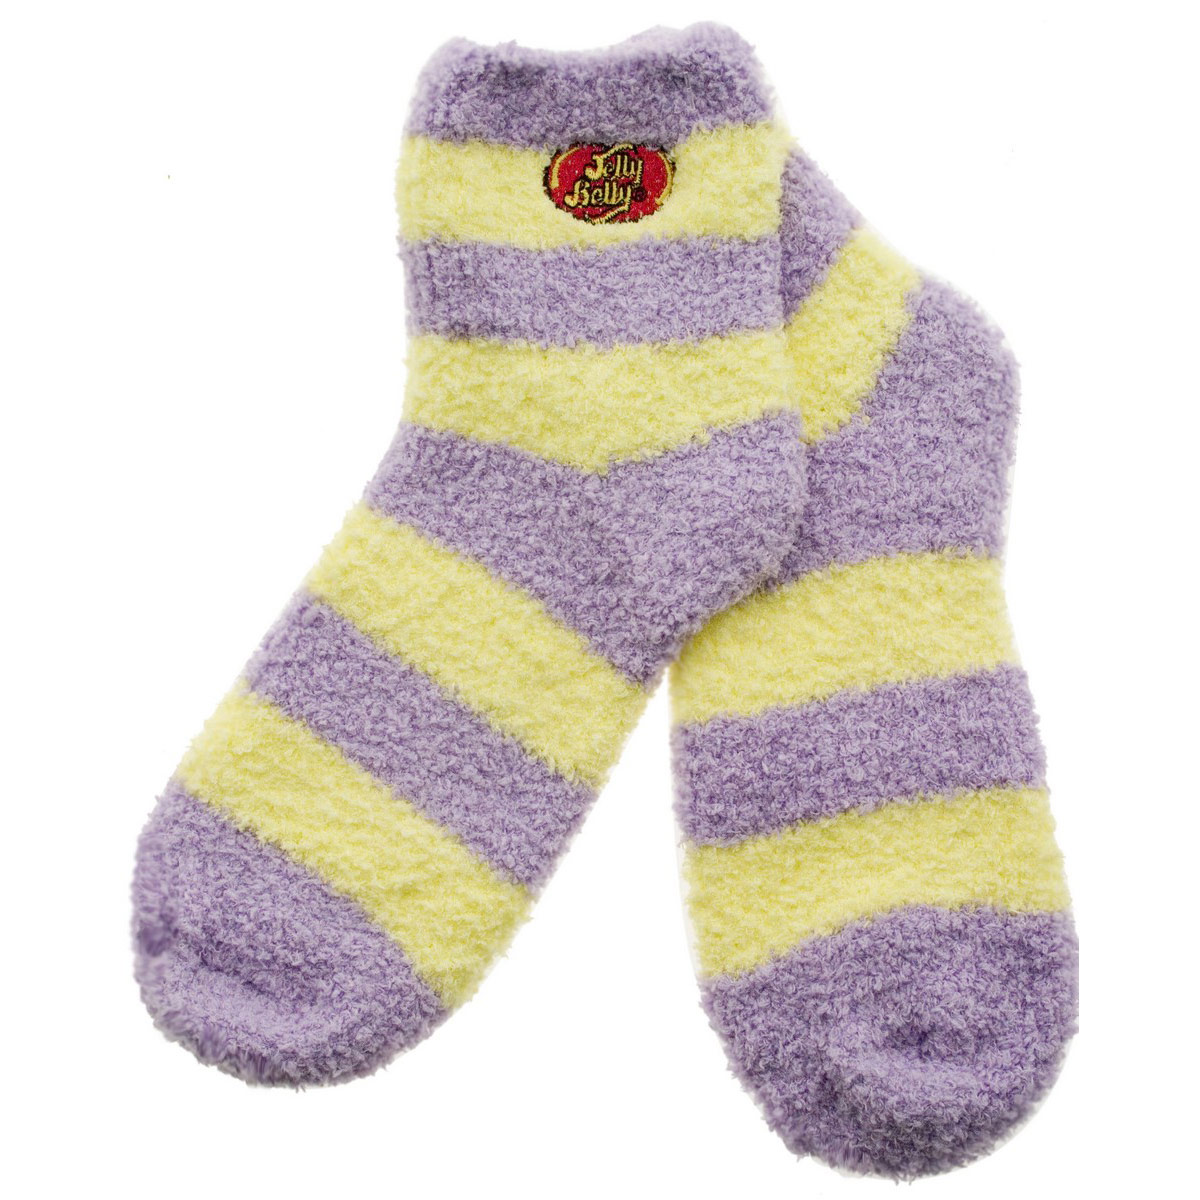 Jelly Belly Fuzzy Socks - Purple and Yellow - Medium